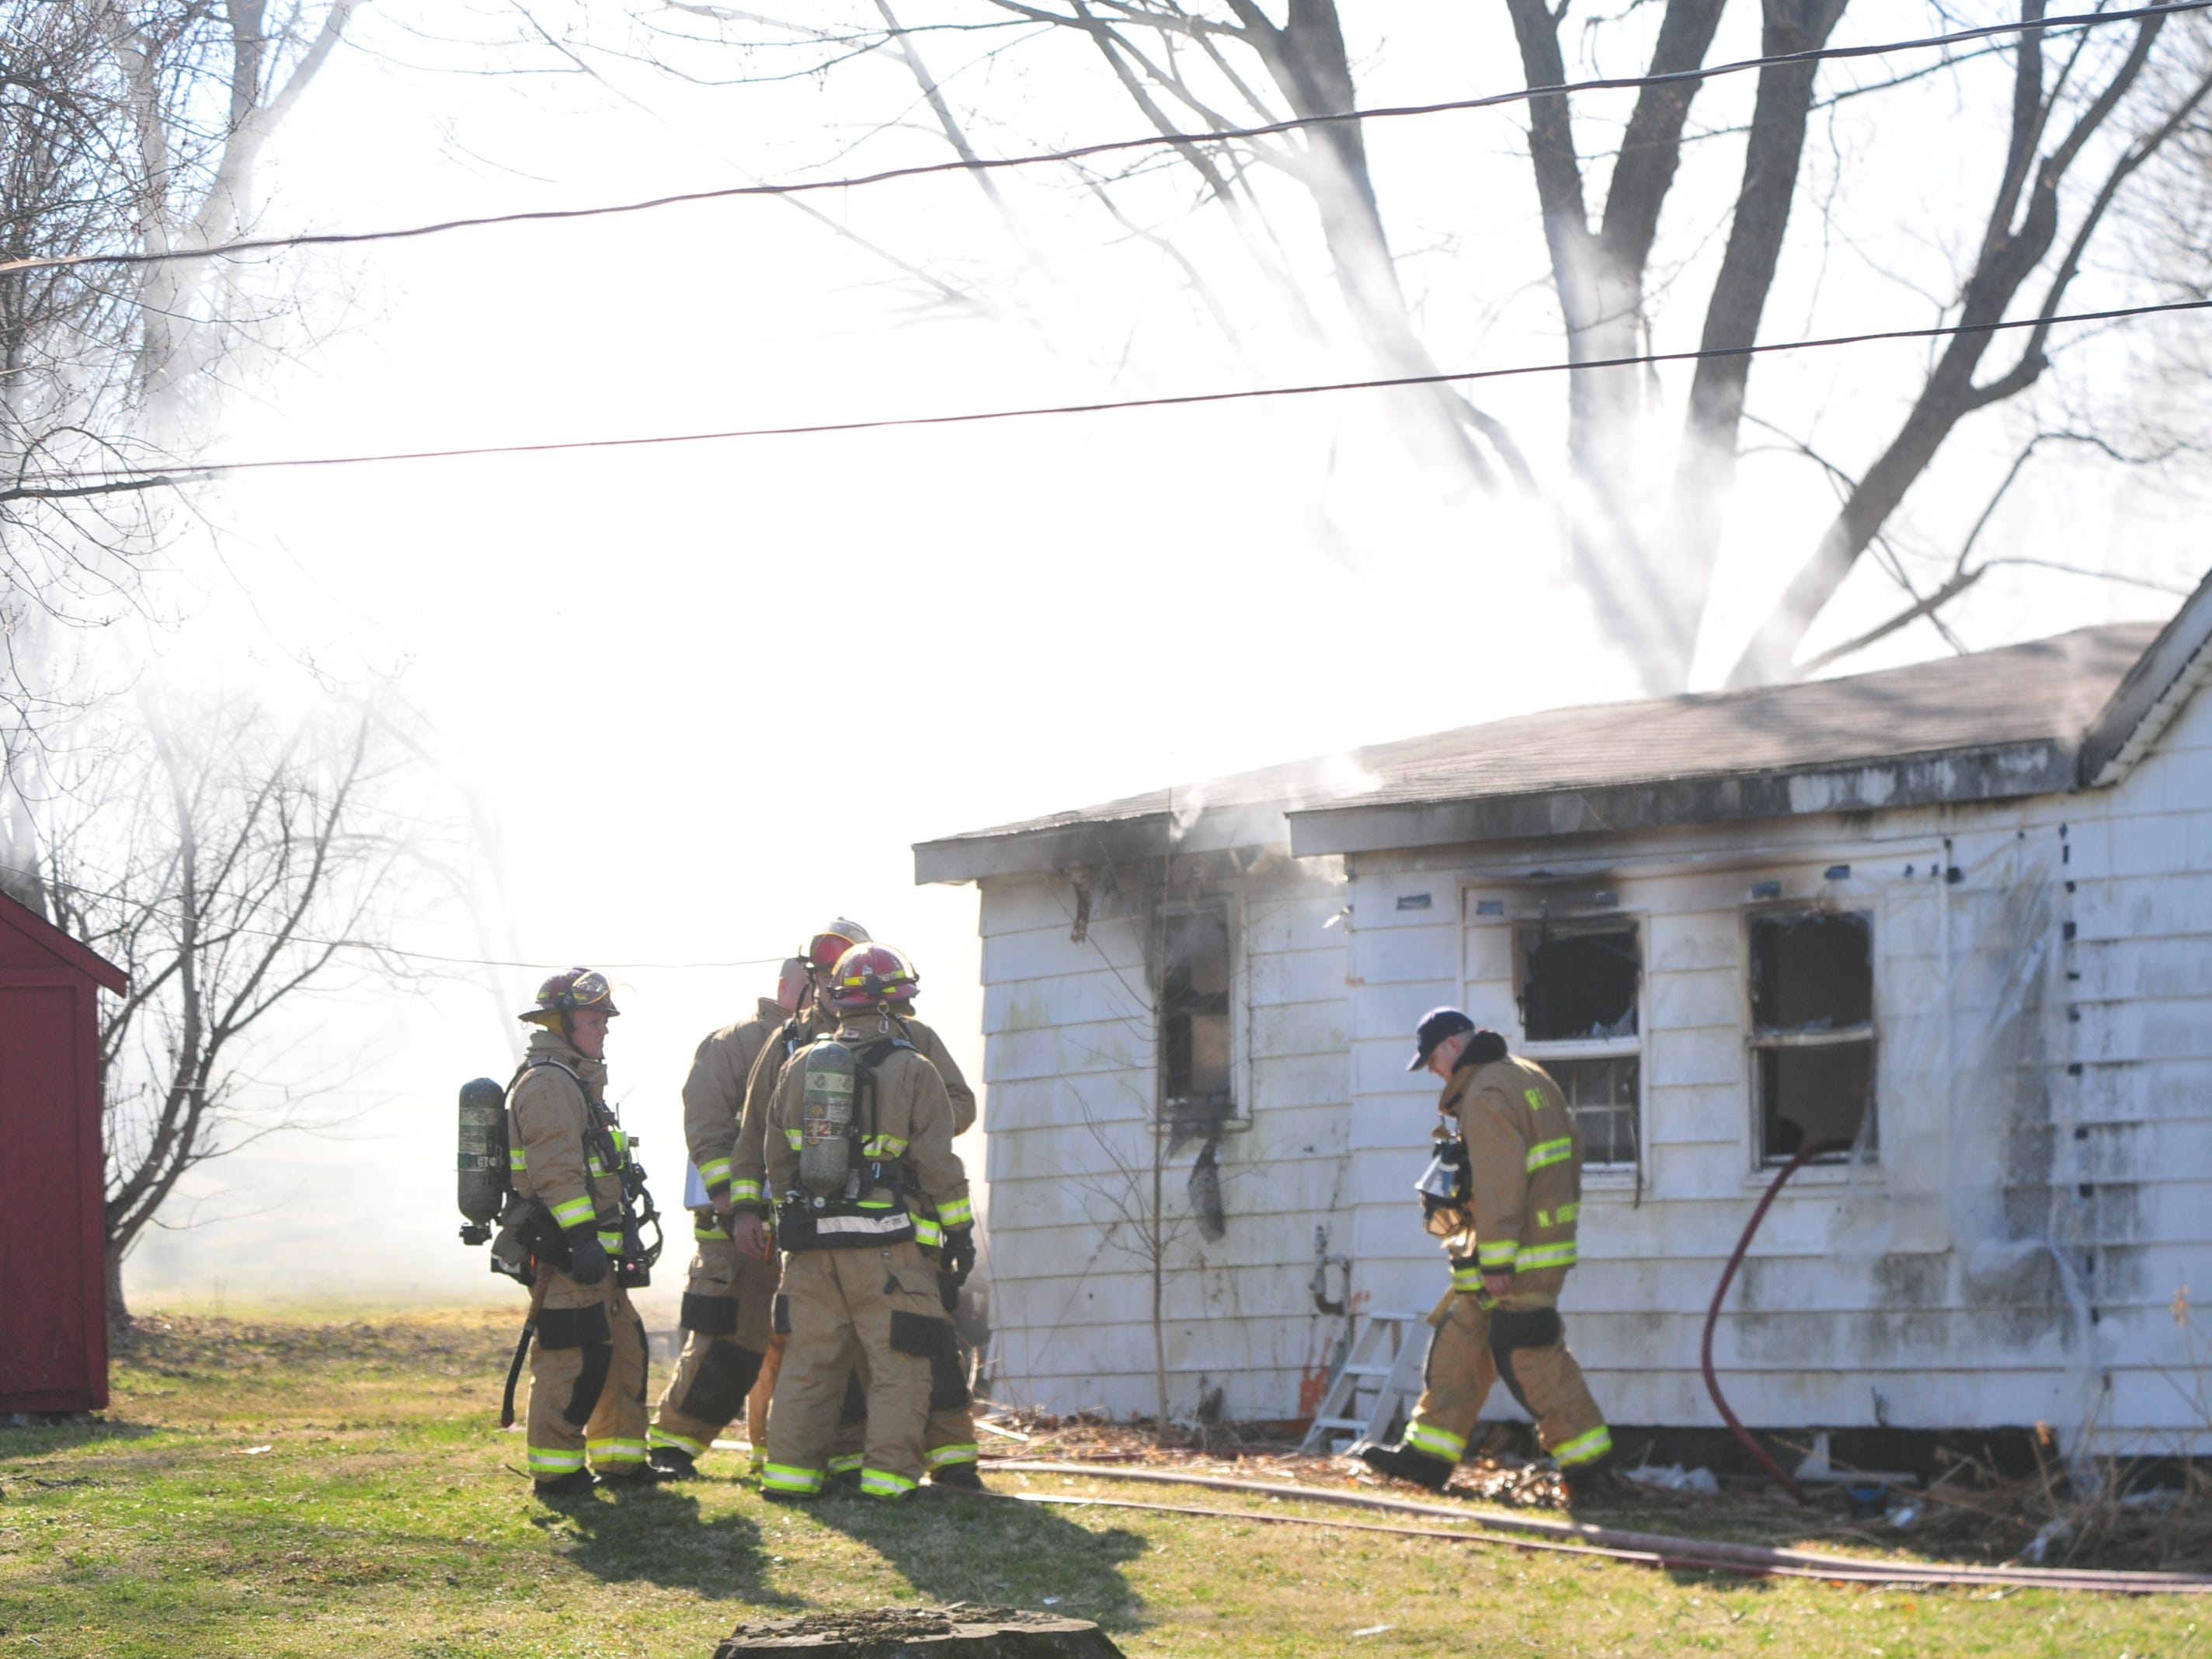 Richmond Fire Department personnel extinguished a house fire Wednesday morning in the 2100 block of South 11th Street.